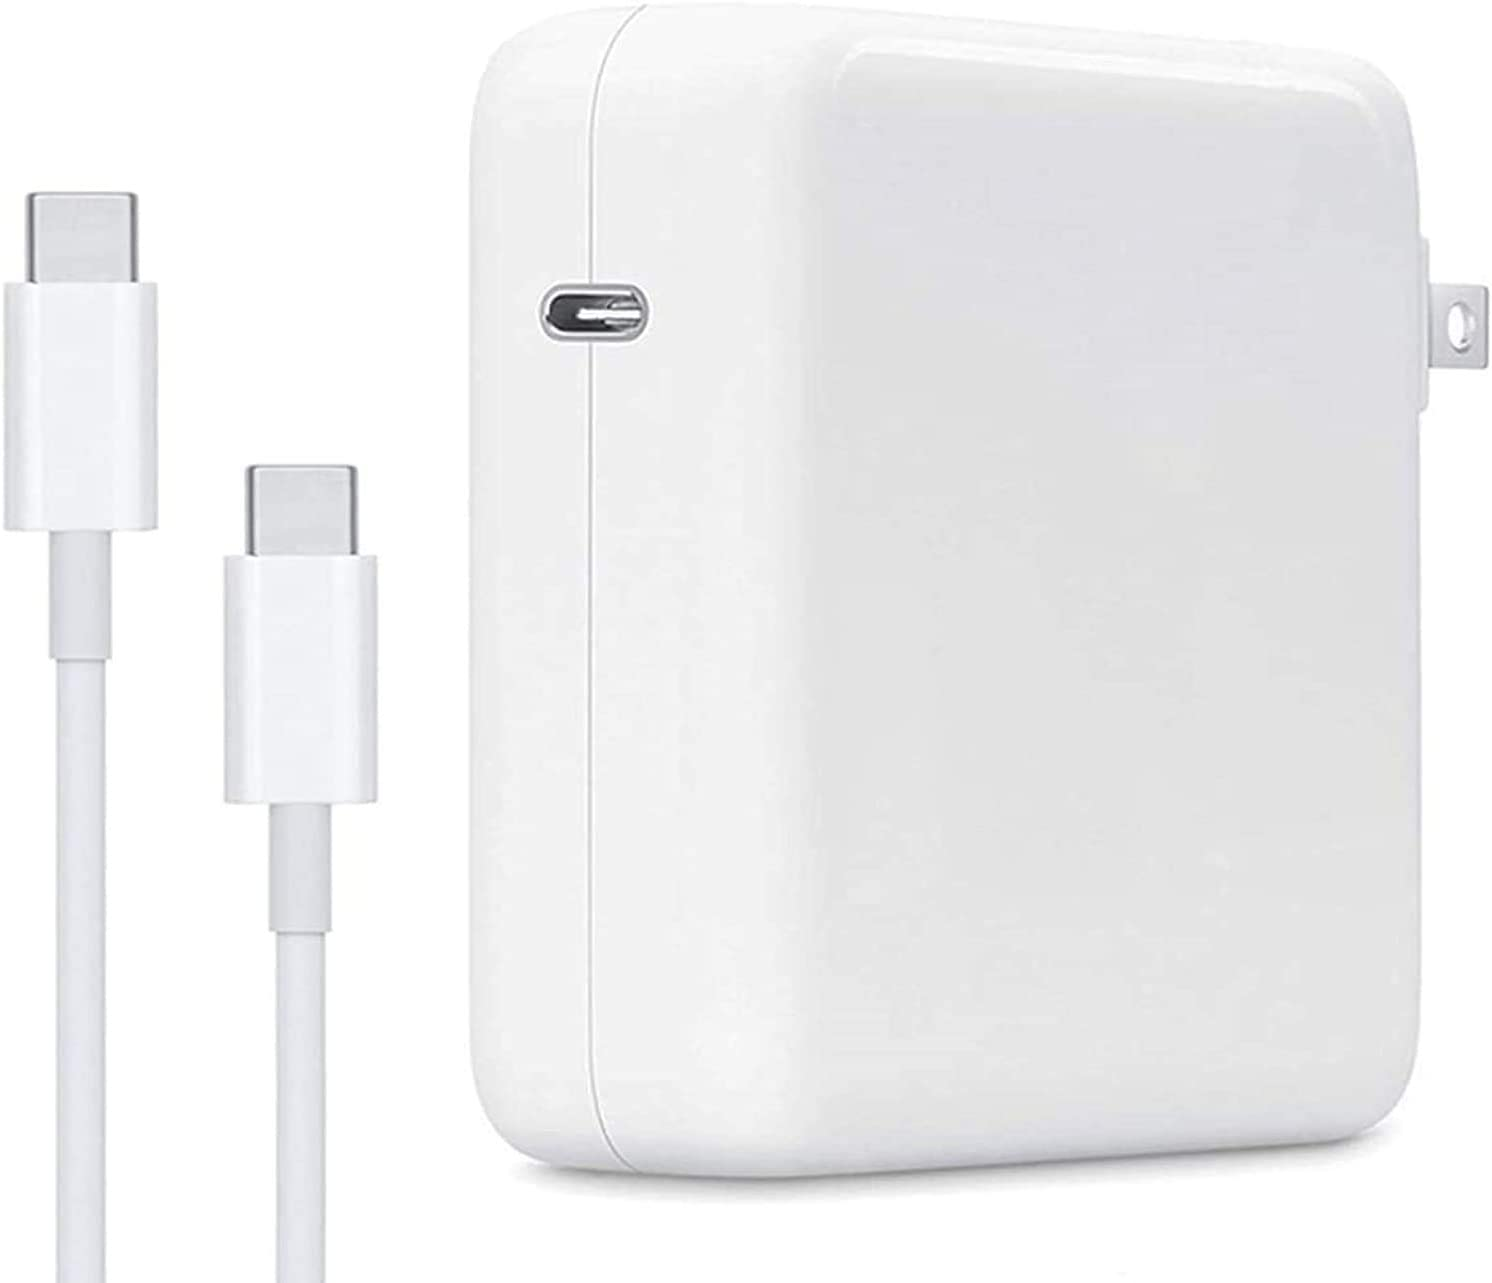 87W USB-C Power Adapter for MacBook Pro Include Charge Cable(6.56ft)